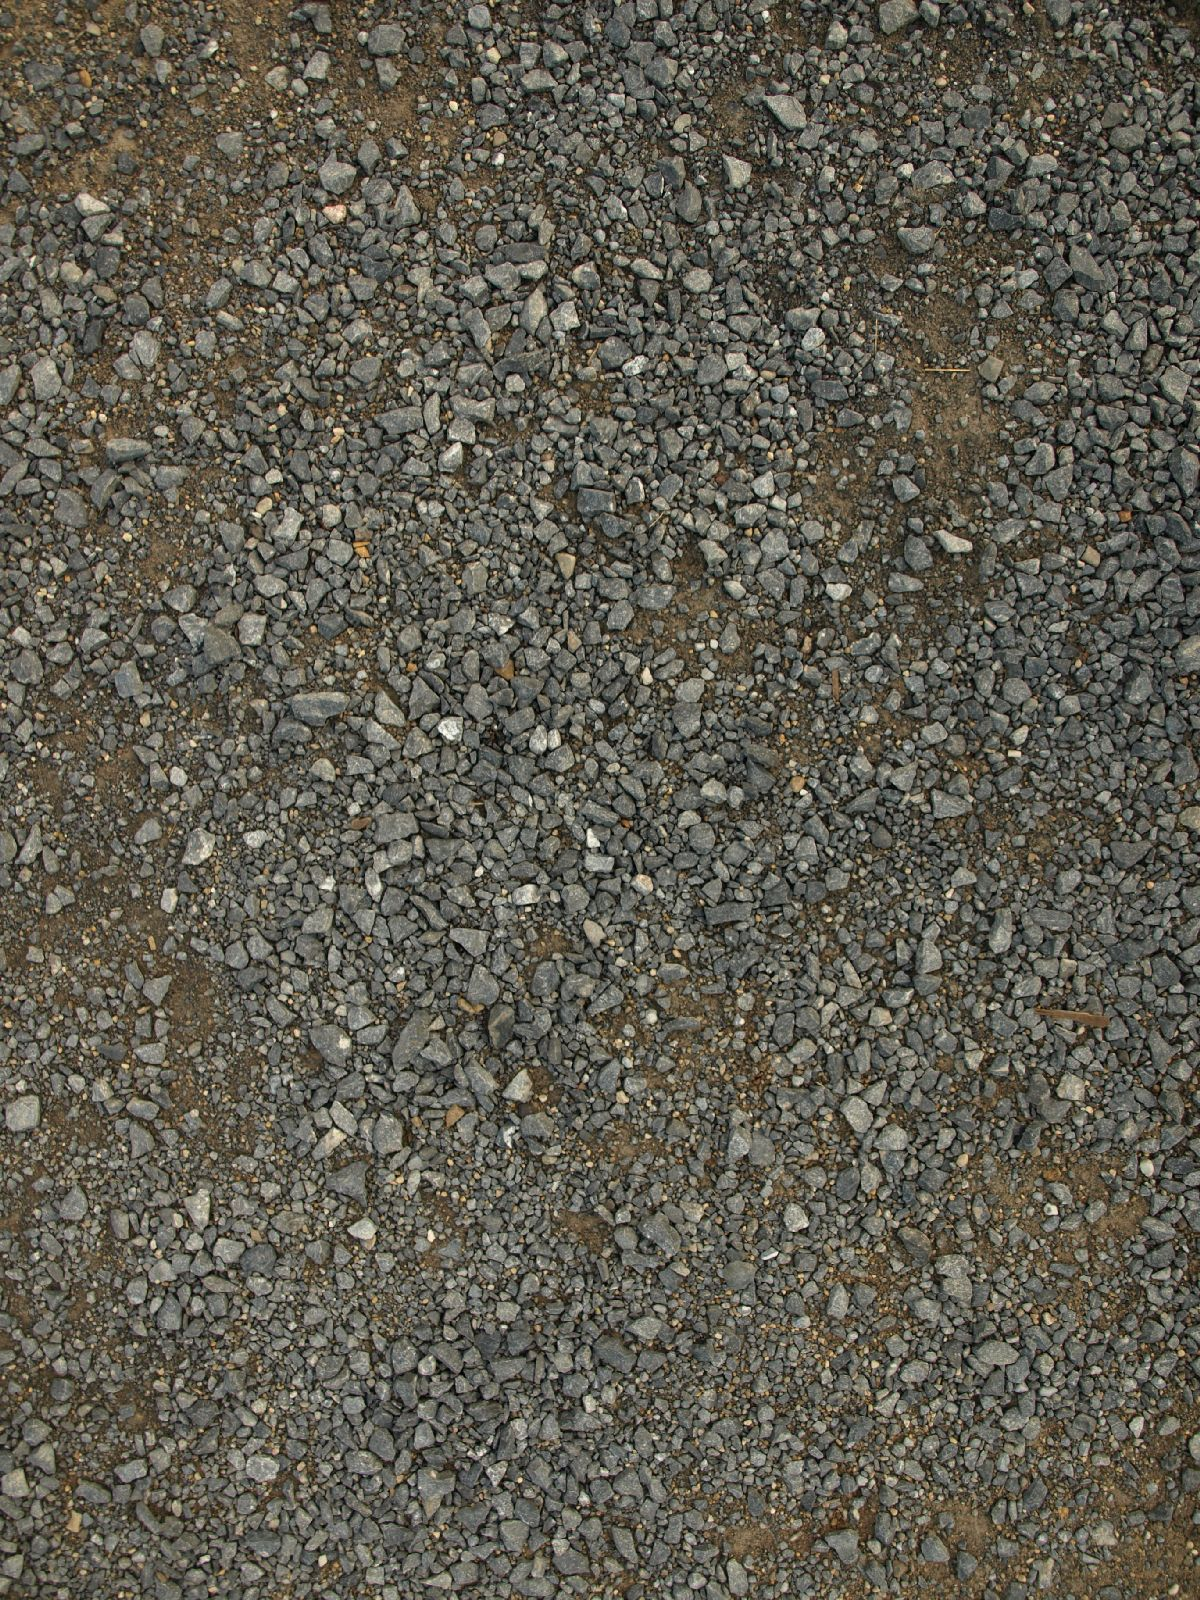 Ground-Nature_Texture_A_P8214564